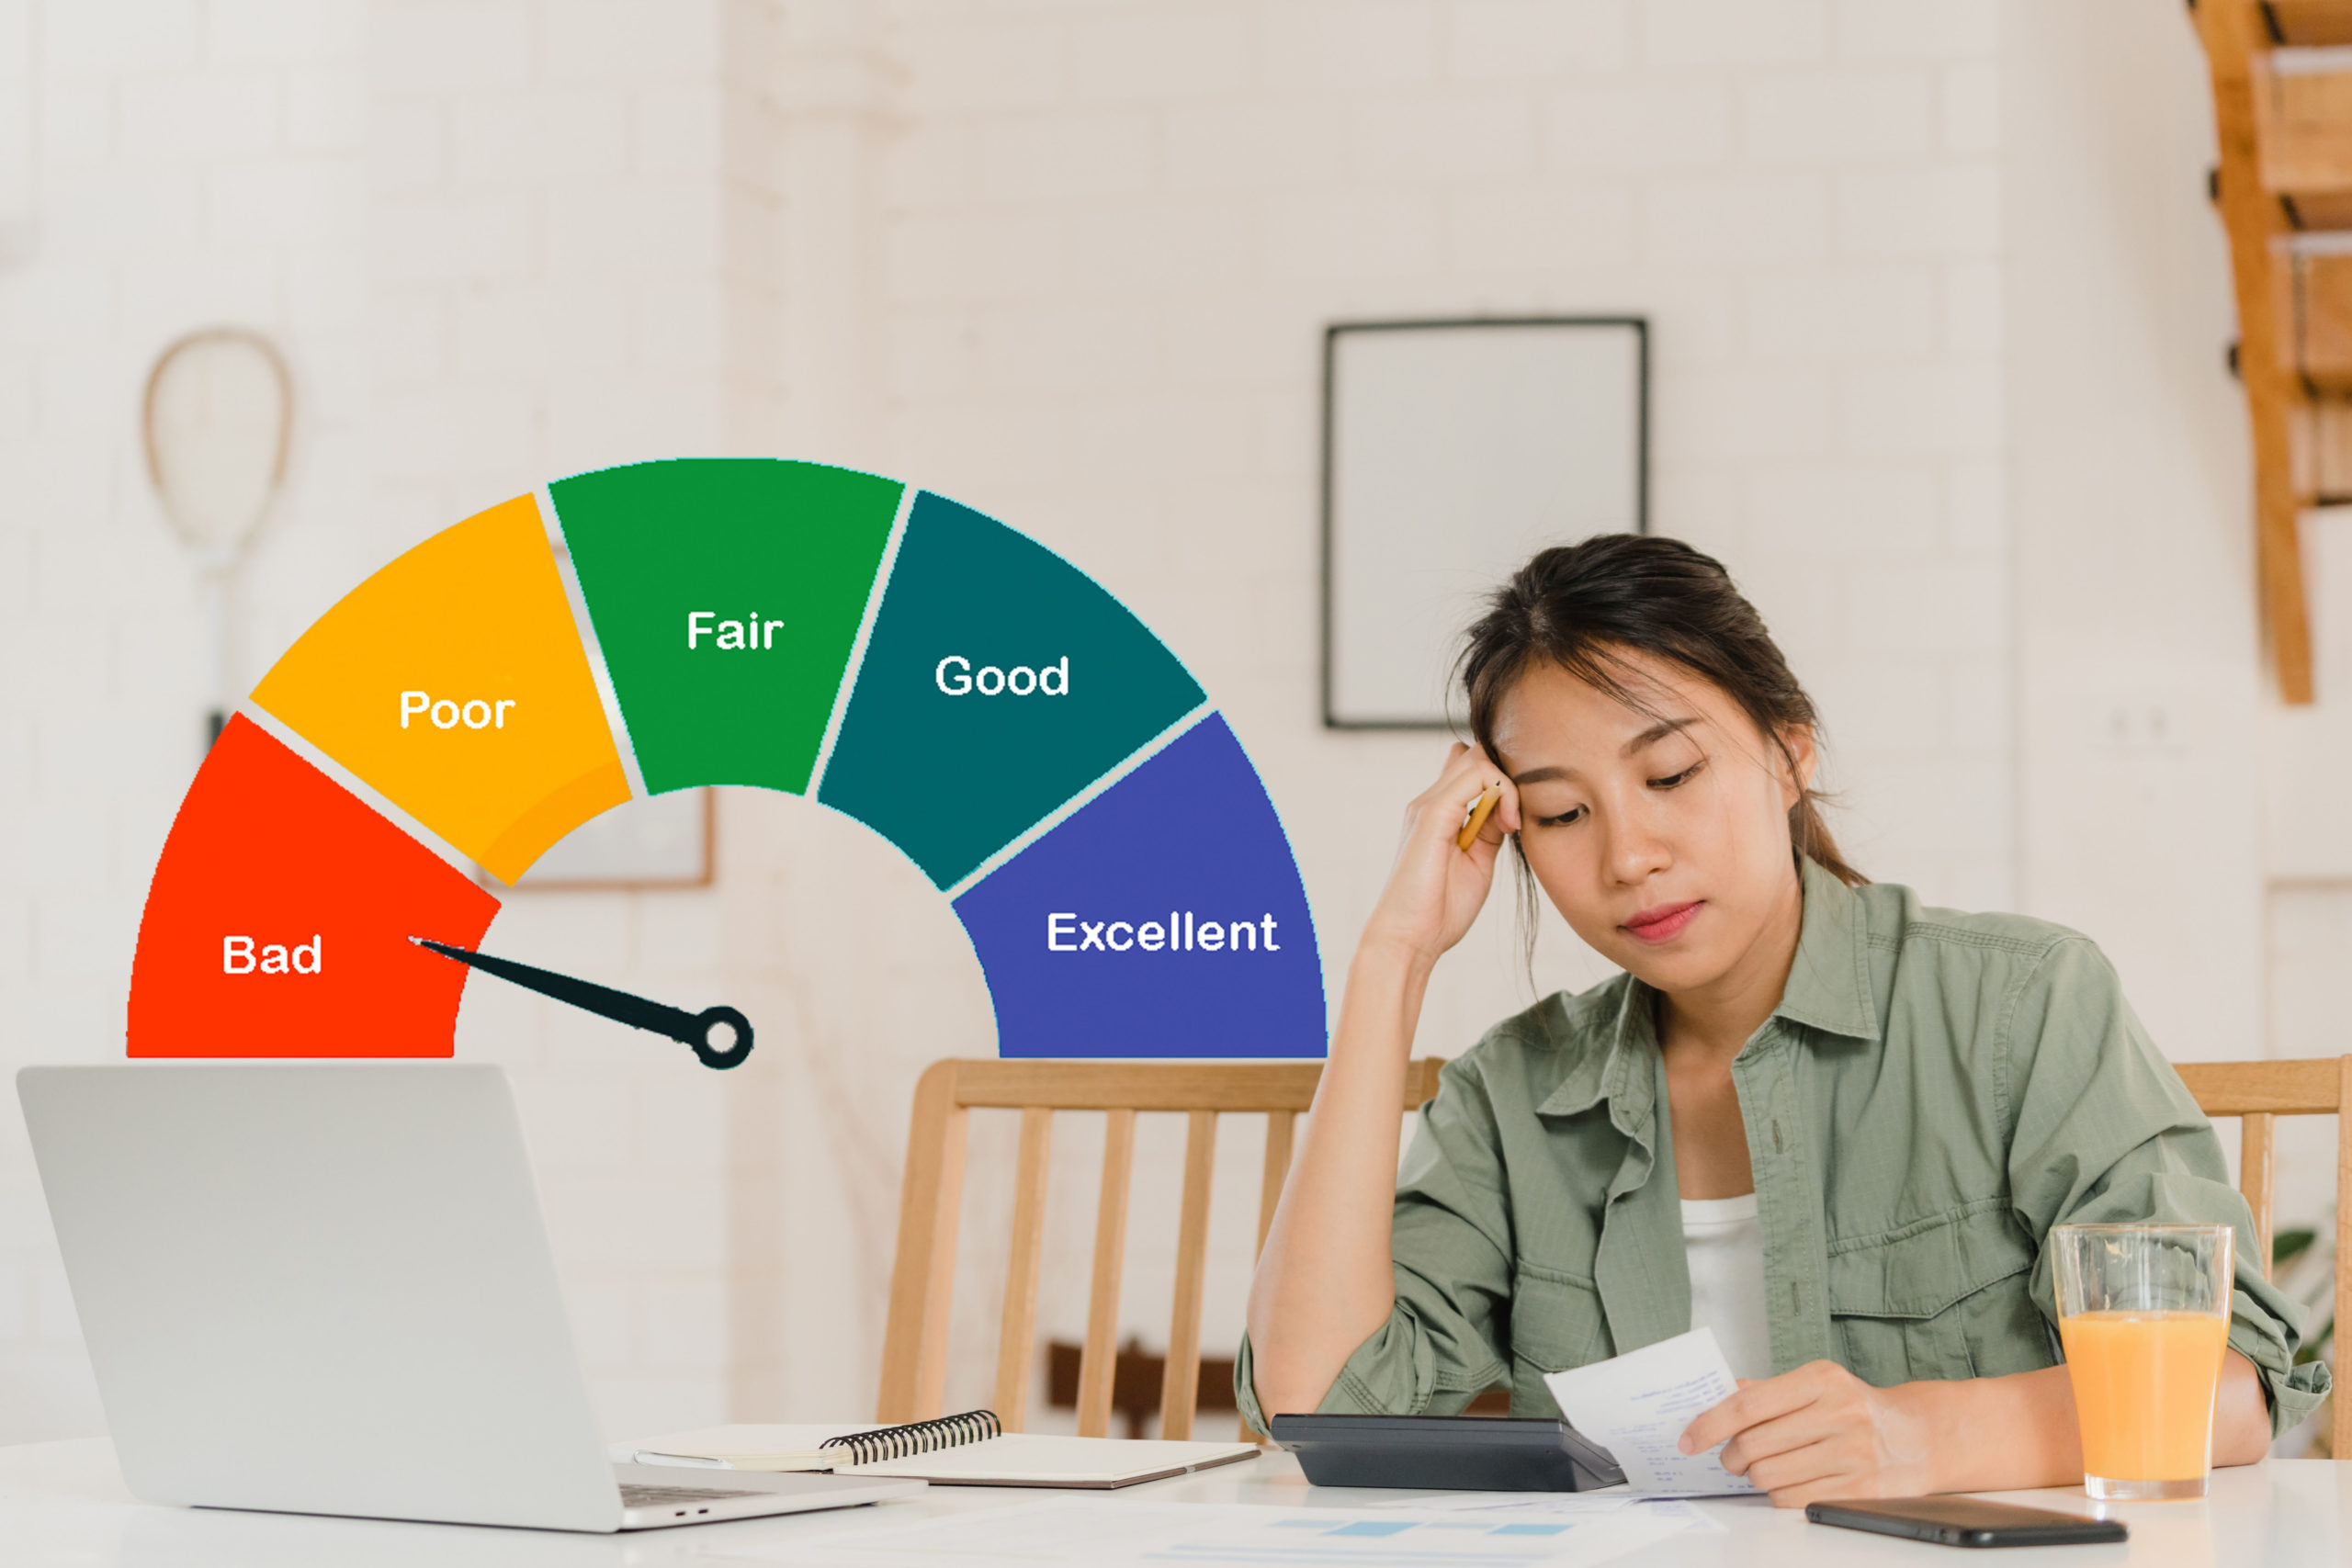 Loan with Bad Credit Score